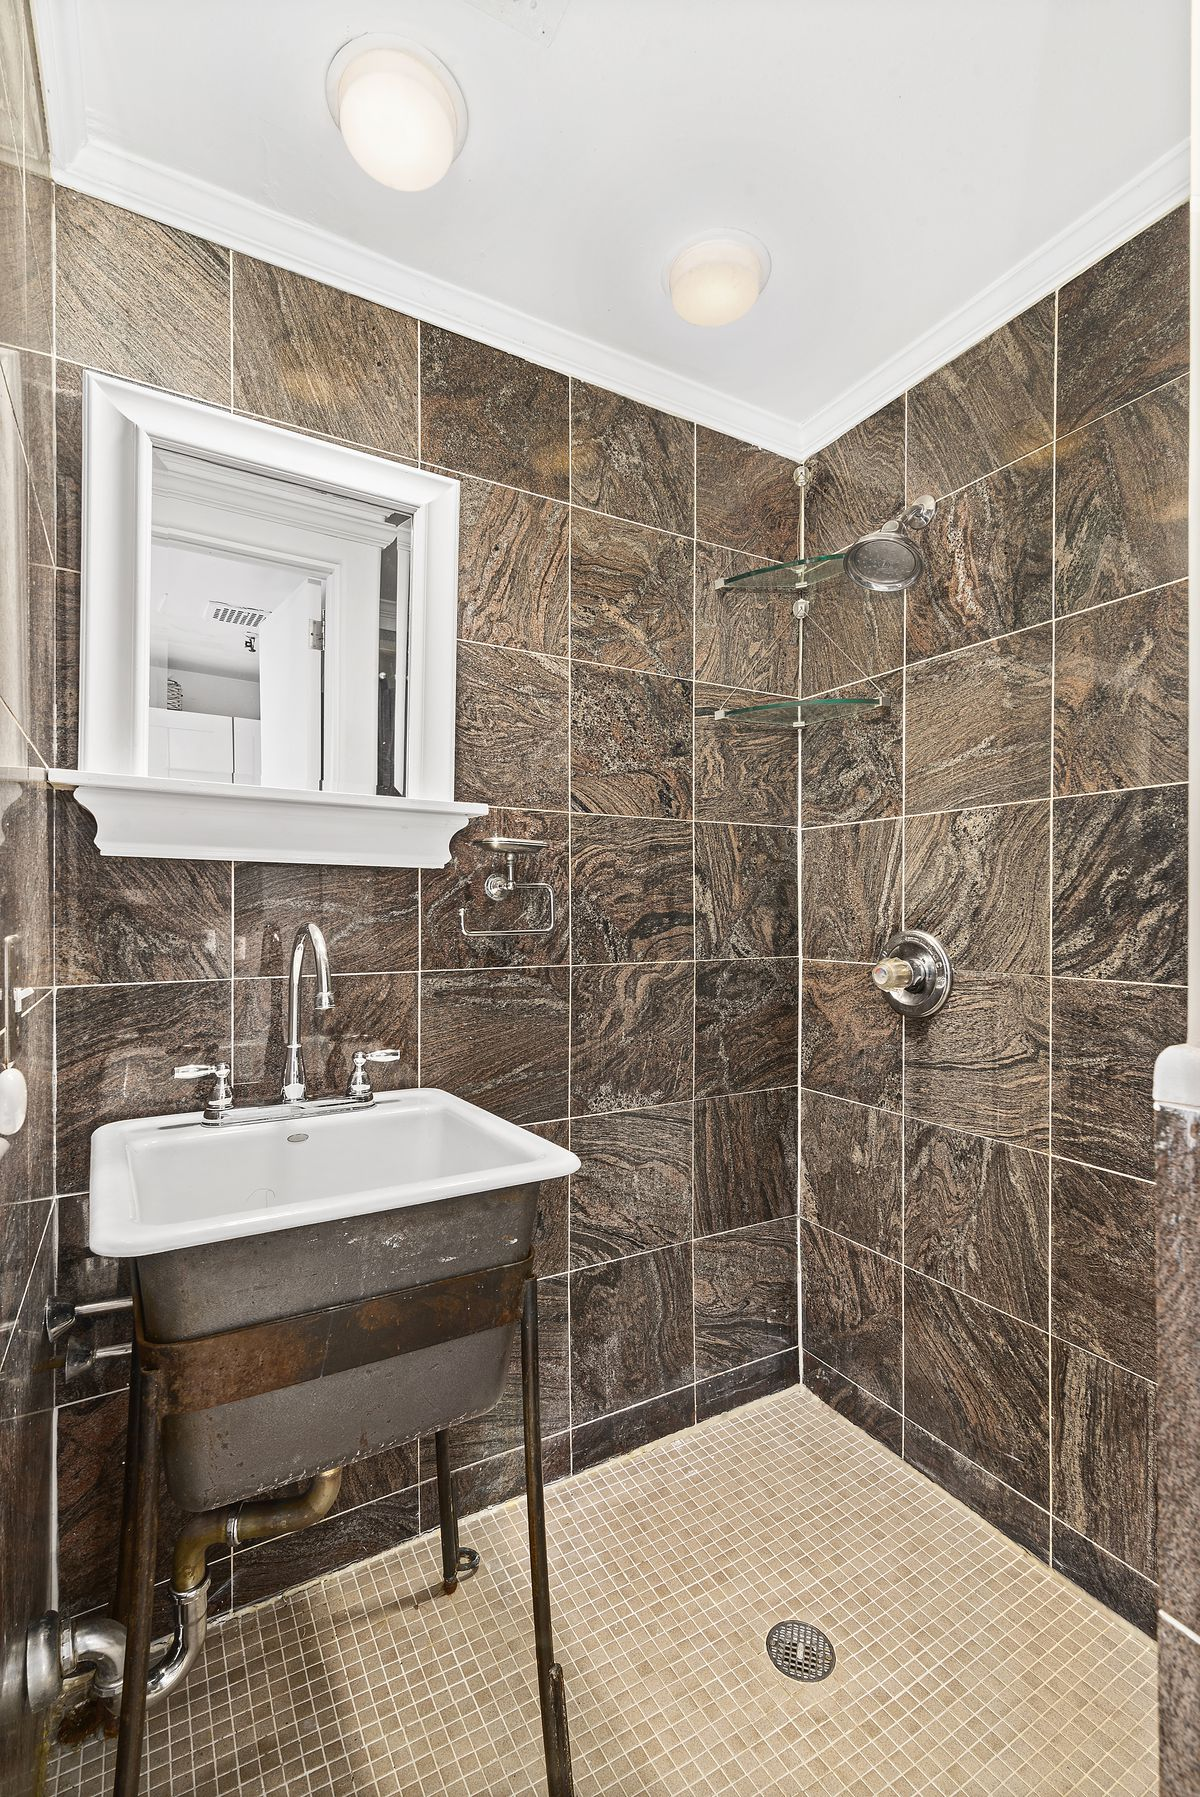 A bathroom with brown tiles.